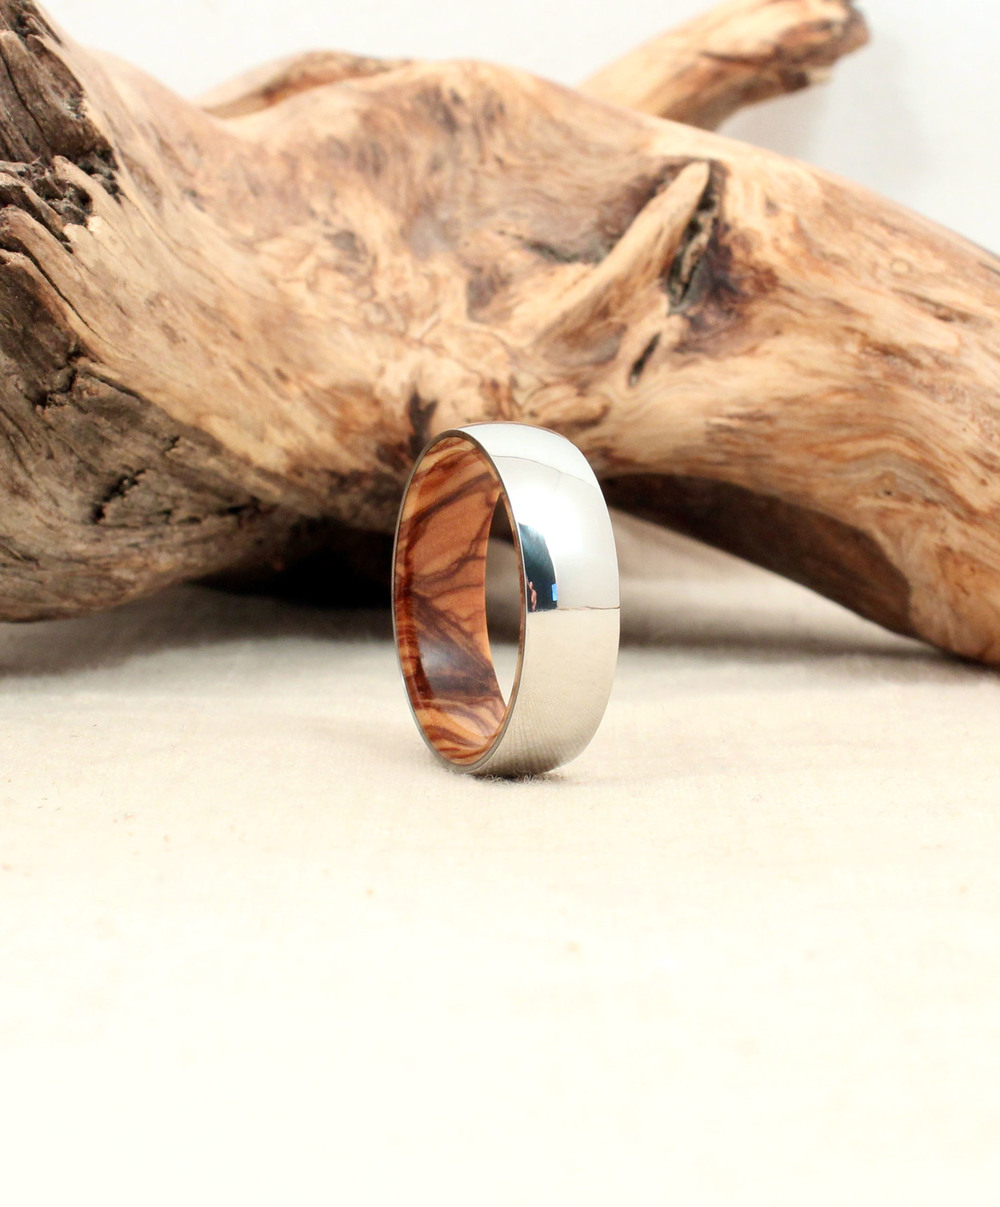 Cobalt/Bethlehem Olive wood (polished finish)